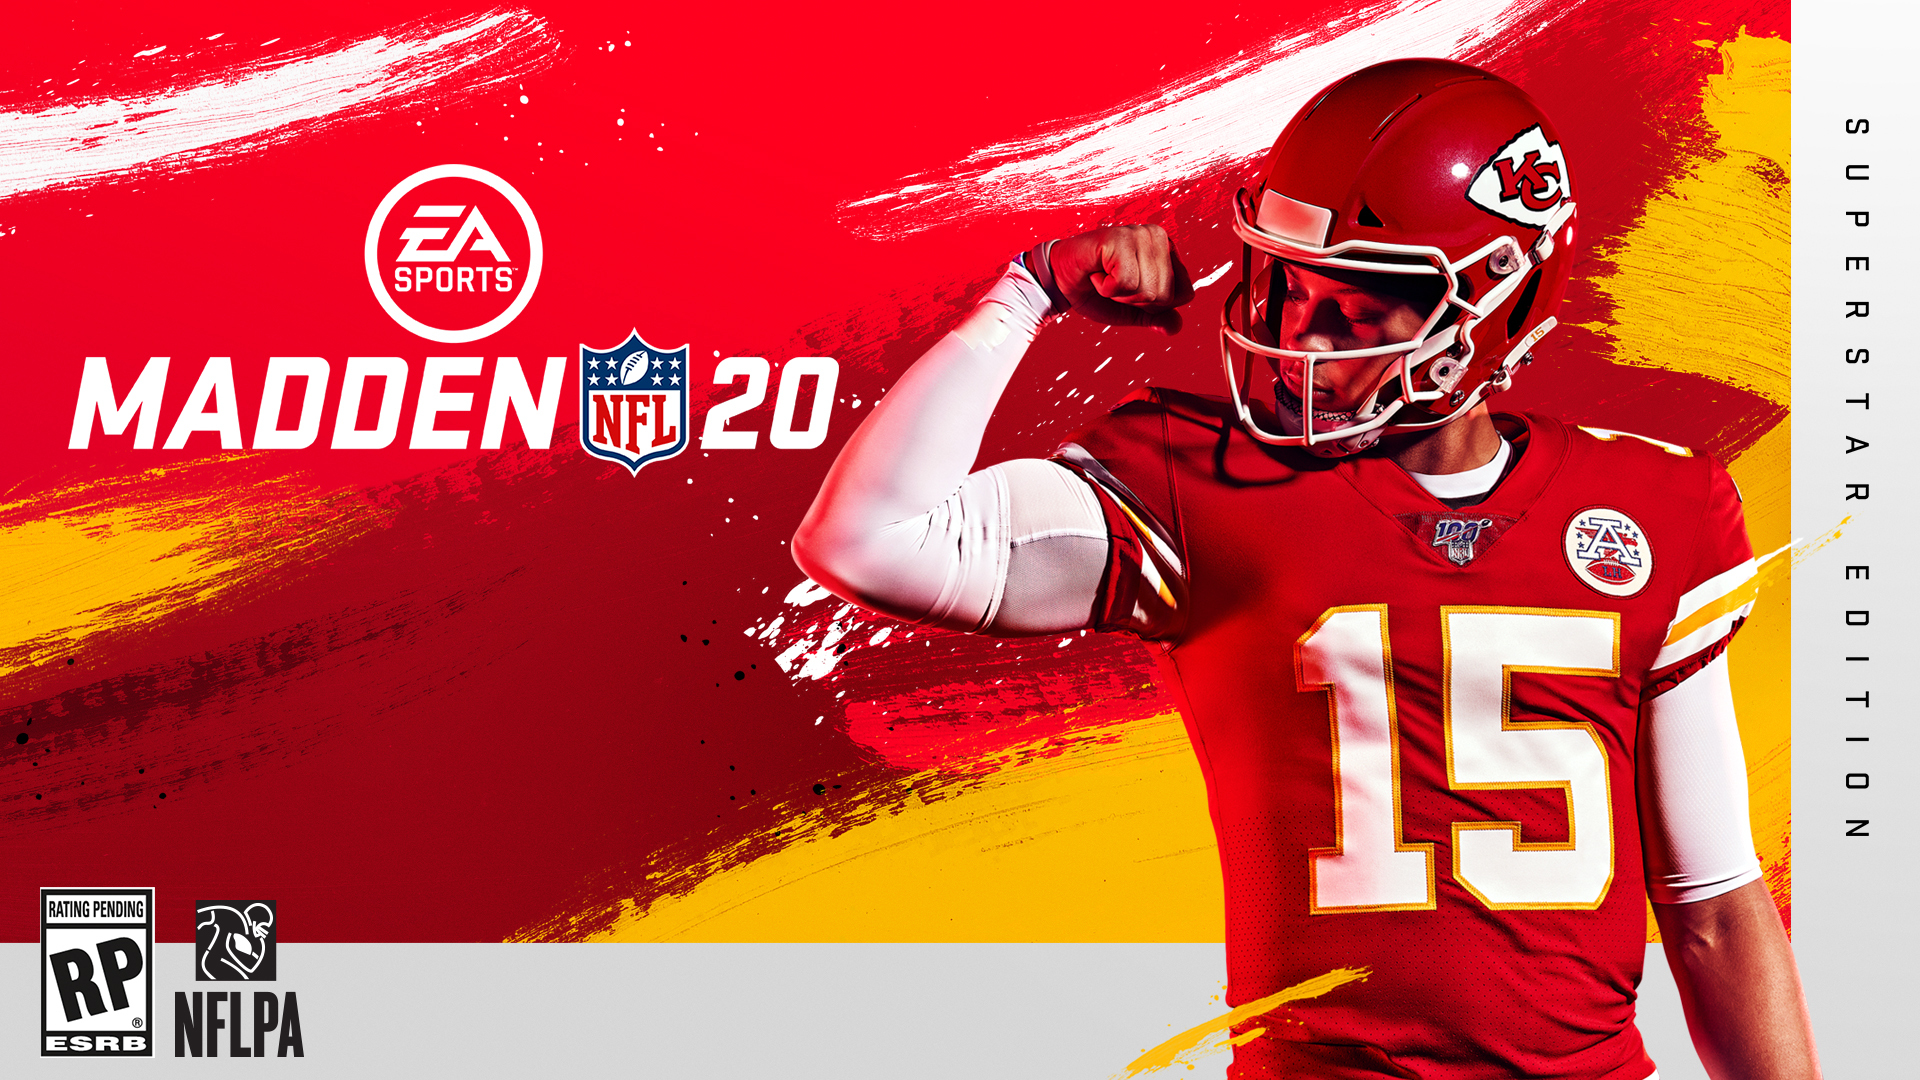 2020 Nfl Schedule Release Date Madden NFL 2020 Releases August 2, Patrick Mahomes to be Cover Star